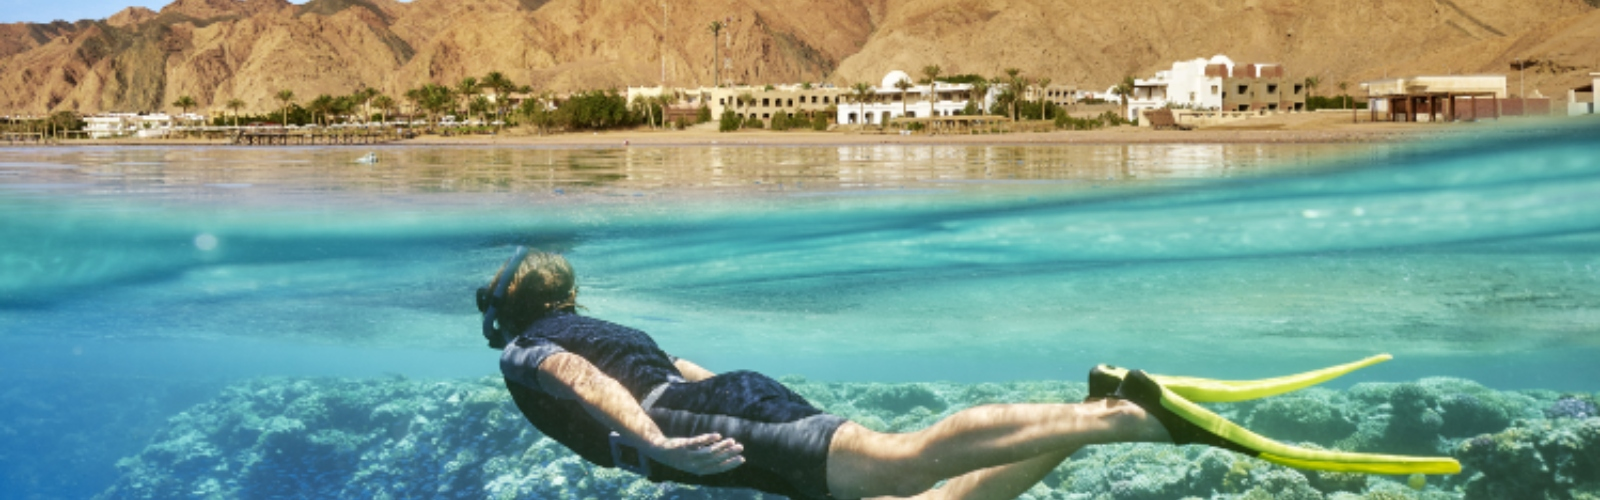 Activities in Sharm el sheikh day tours